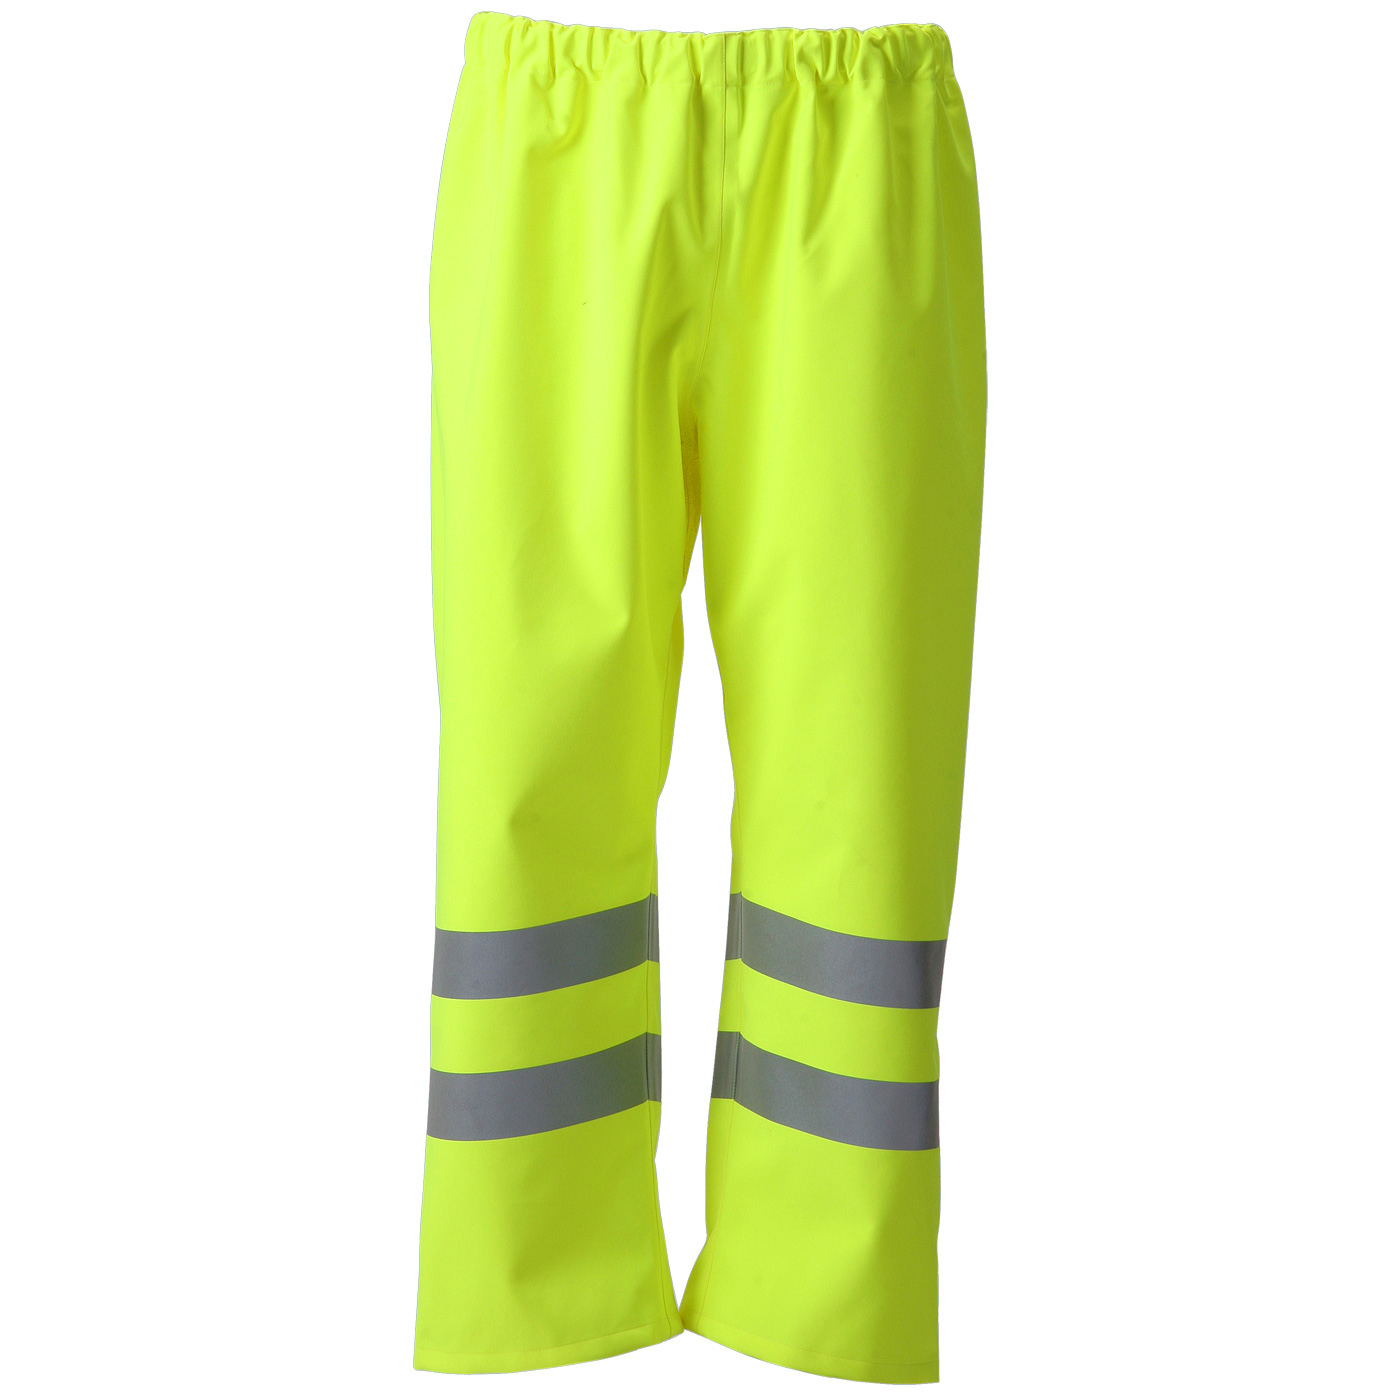 B-Seen Gore-Tex Over Trousers Foul Weather S Saturn Yellow Ref GTHV160SYS *Up to 3 Day Leadtime*